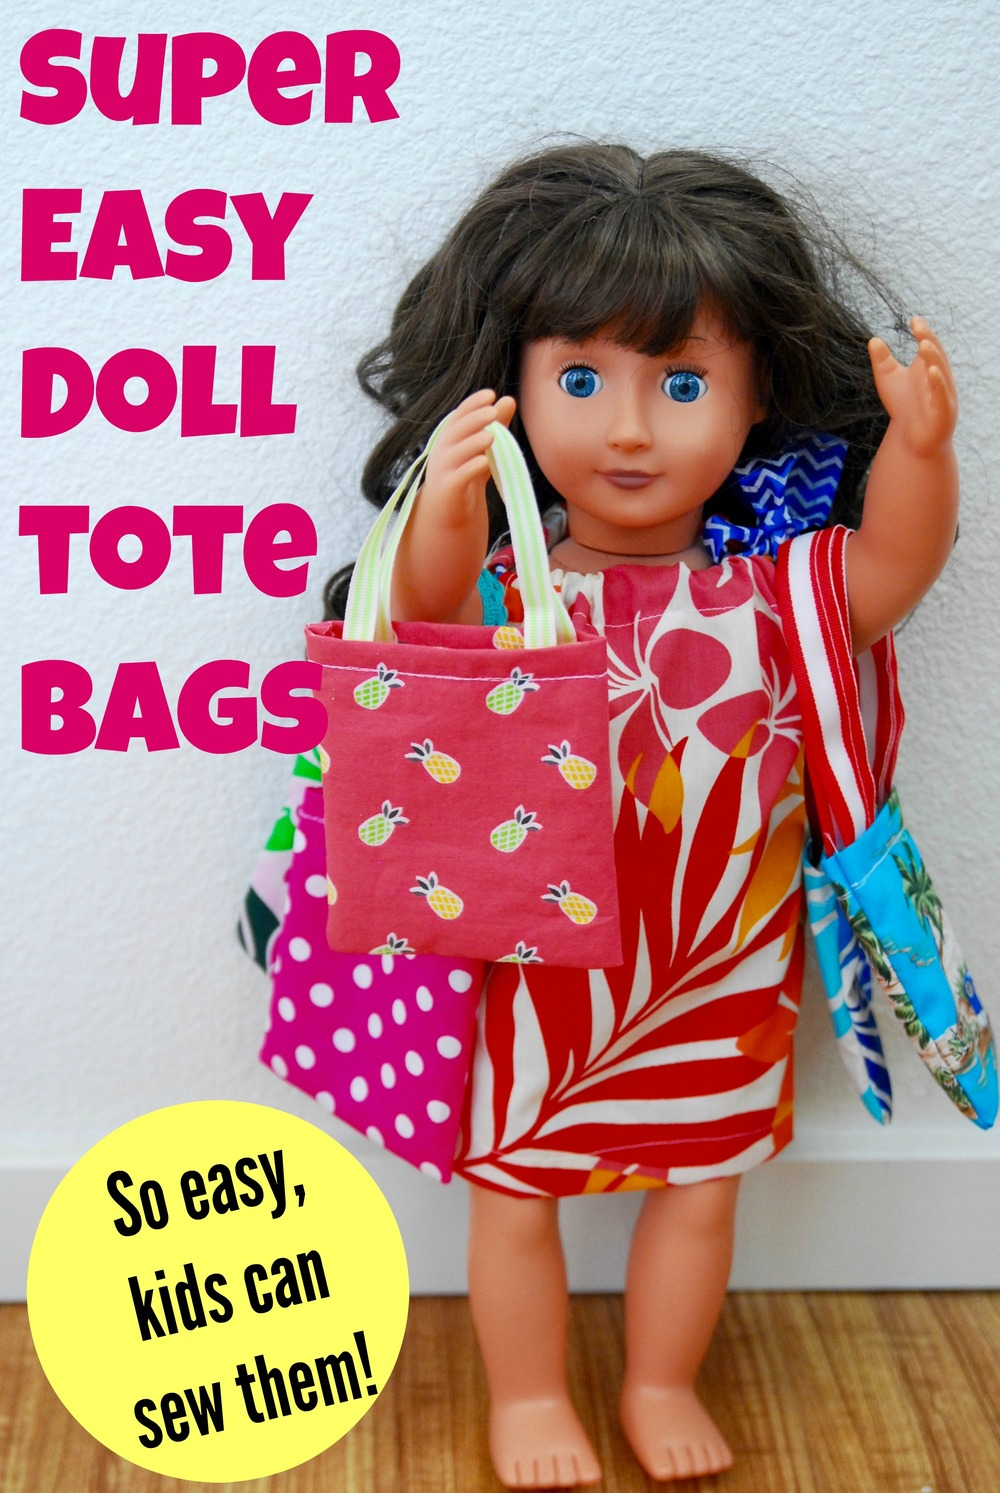 How to sew a doll tote bag, by www.pincutsewstudio.com